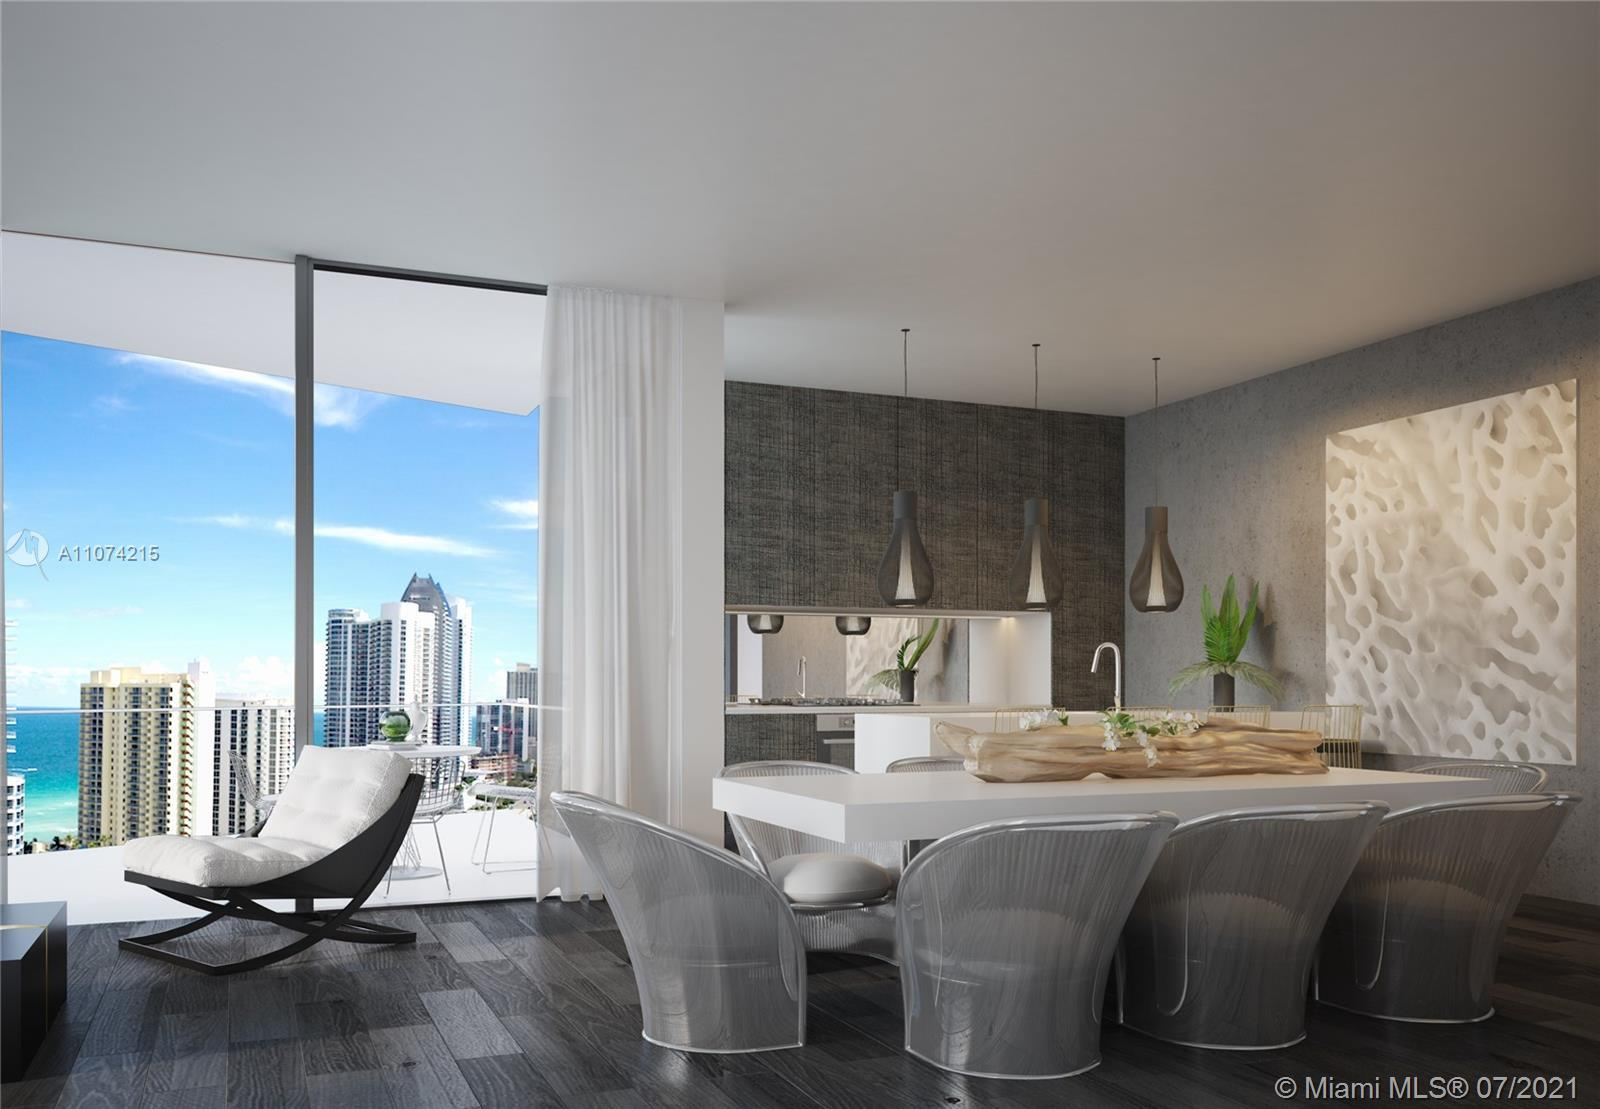 NEW CONSTRUCTION! Move in by the Q1 2022. This residence offers a 372 sq.ft. private terrace, 10' c